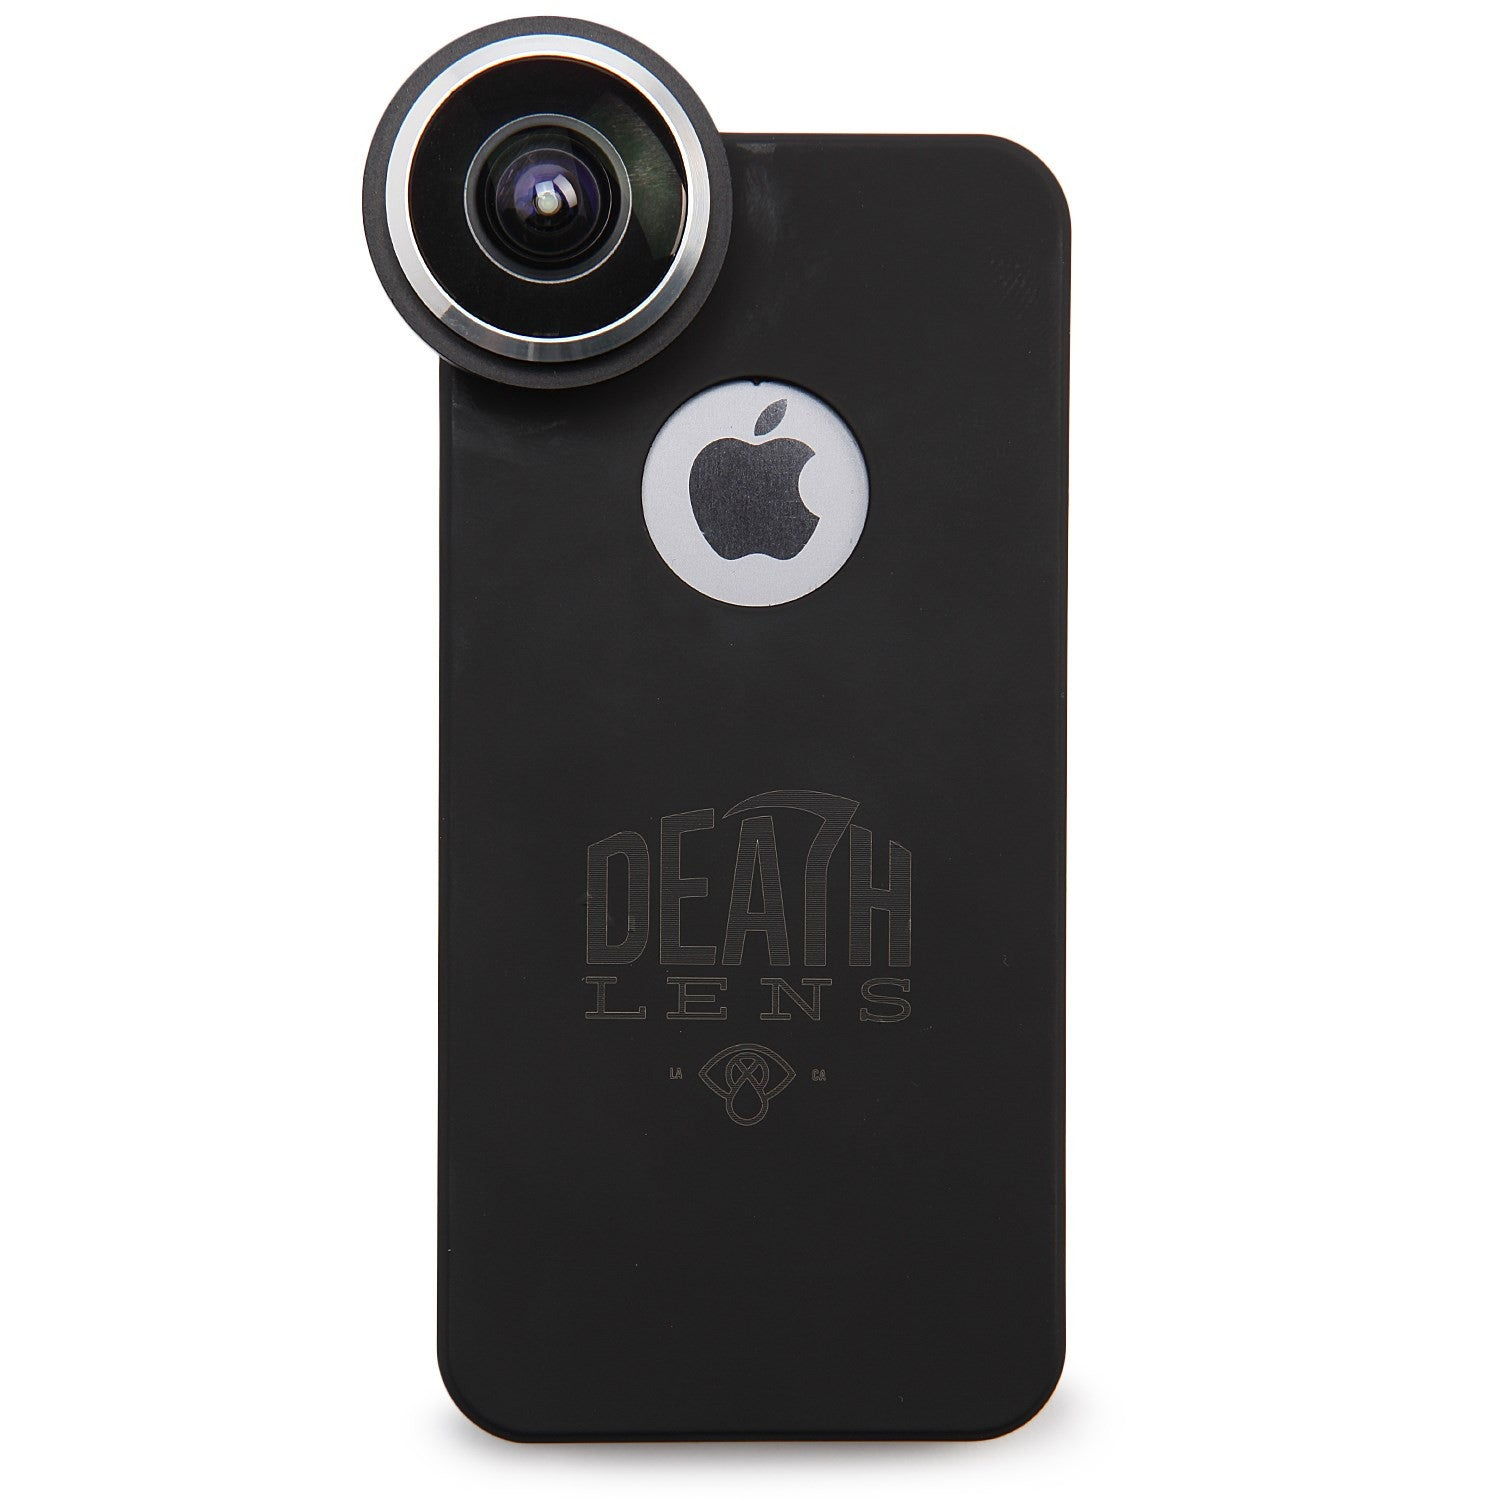 Death lens - Stoked Boardshop  - 1